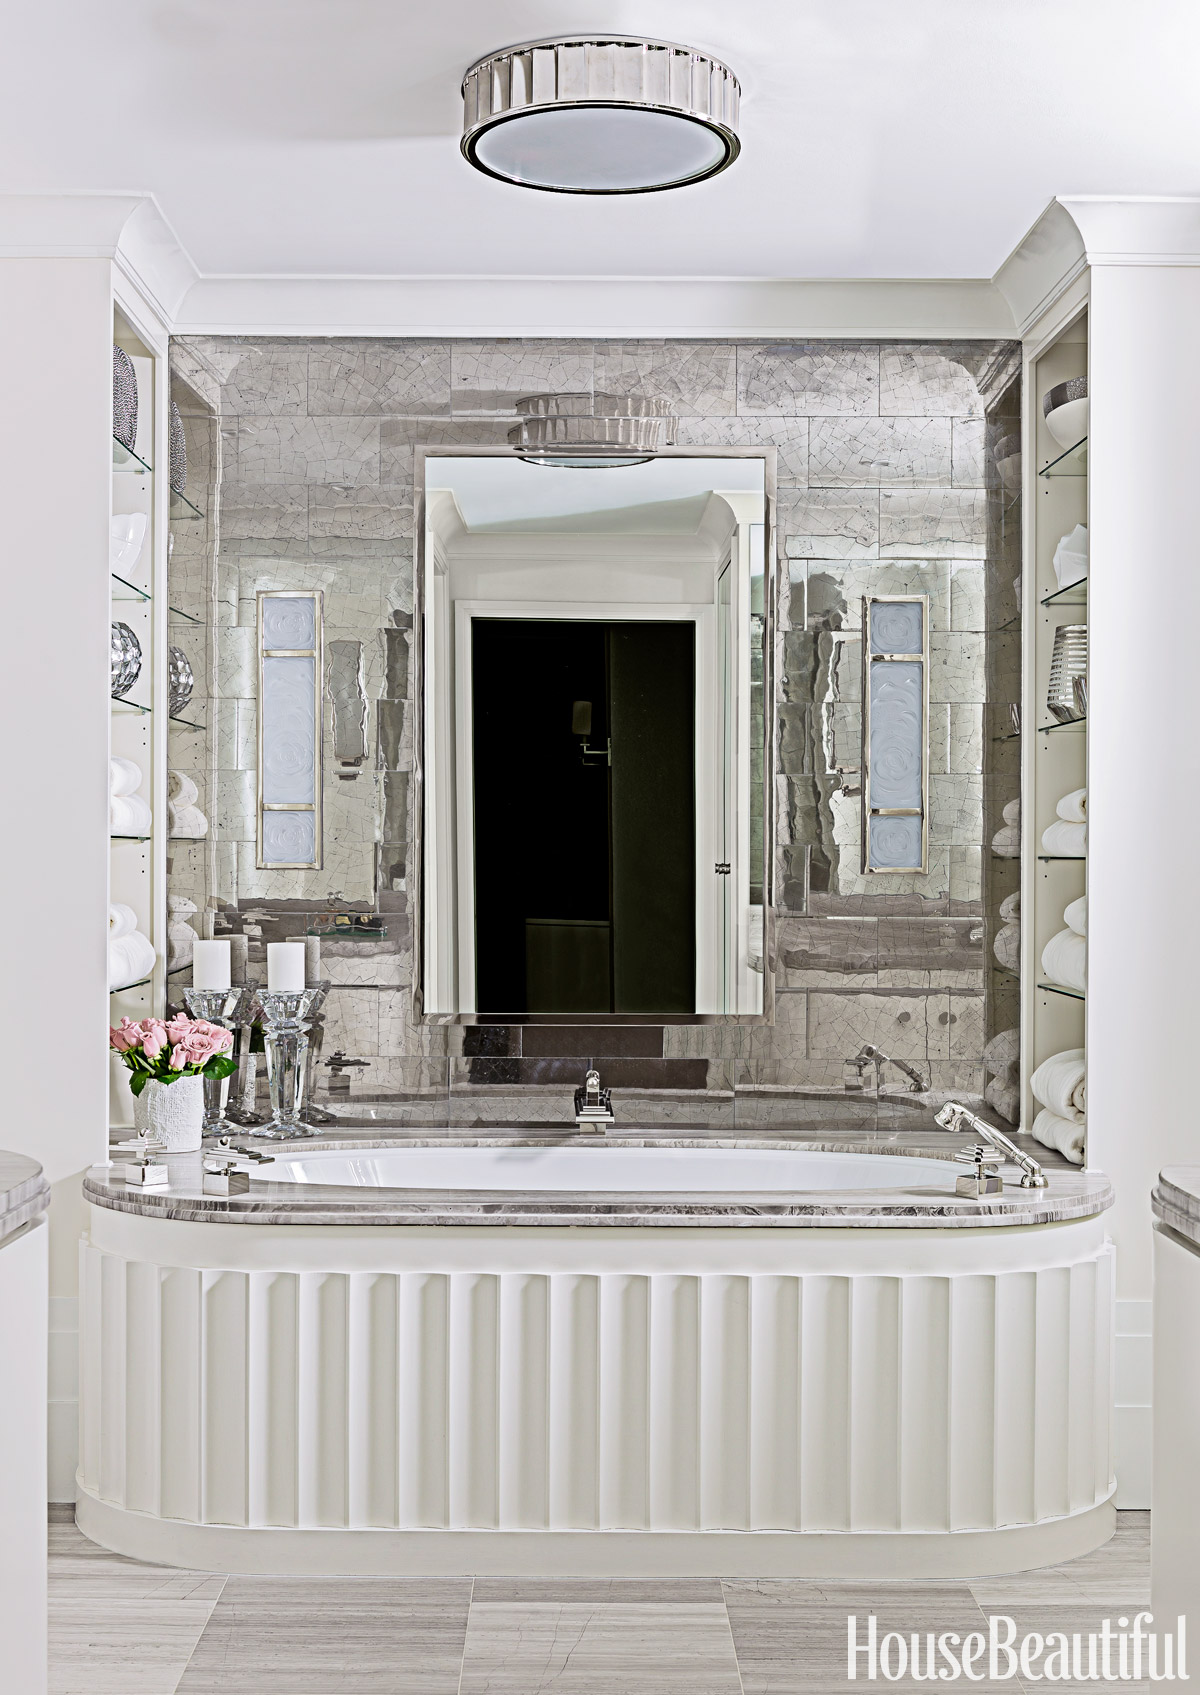 1423864400-hbx-art-deco-bathroom-0315